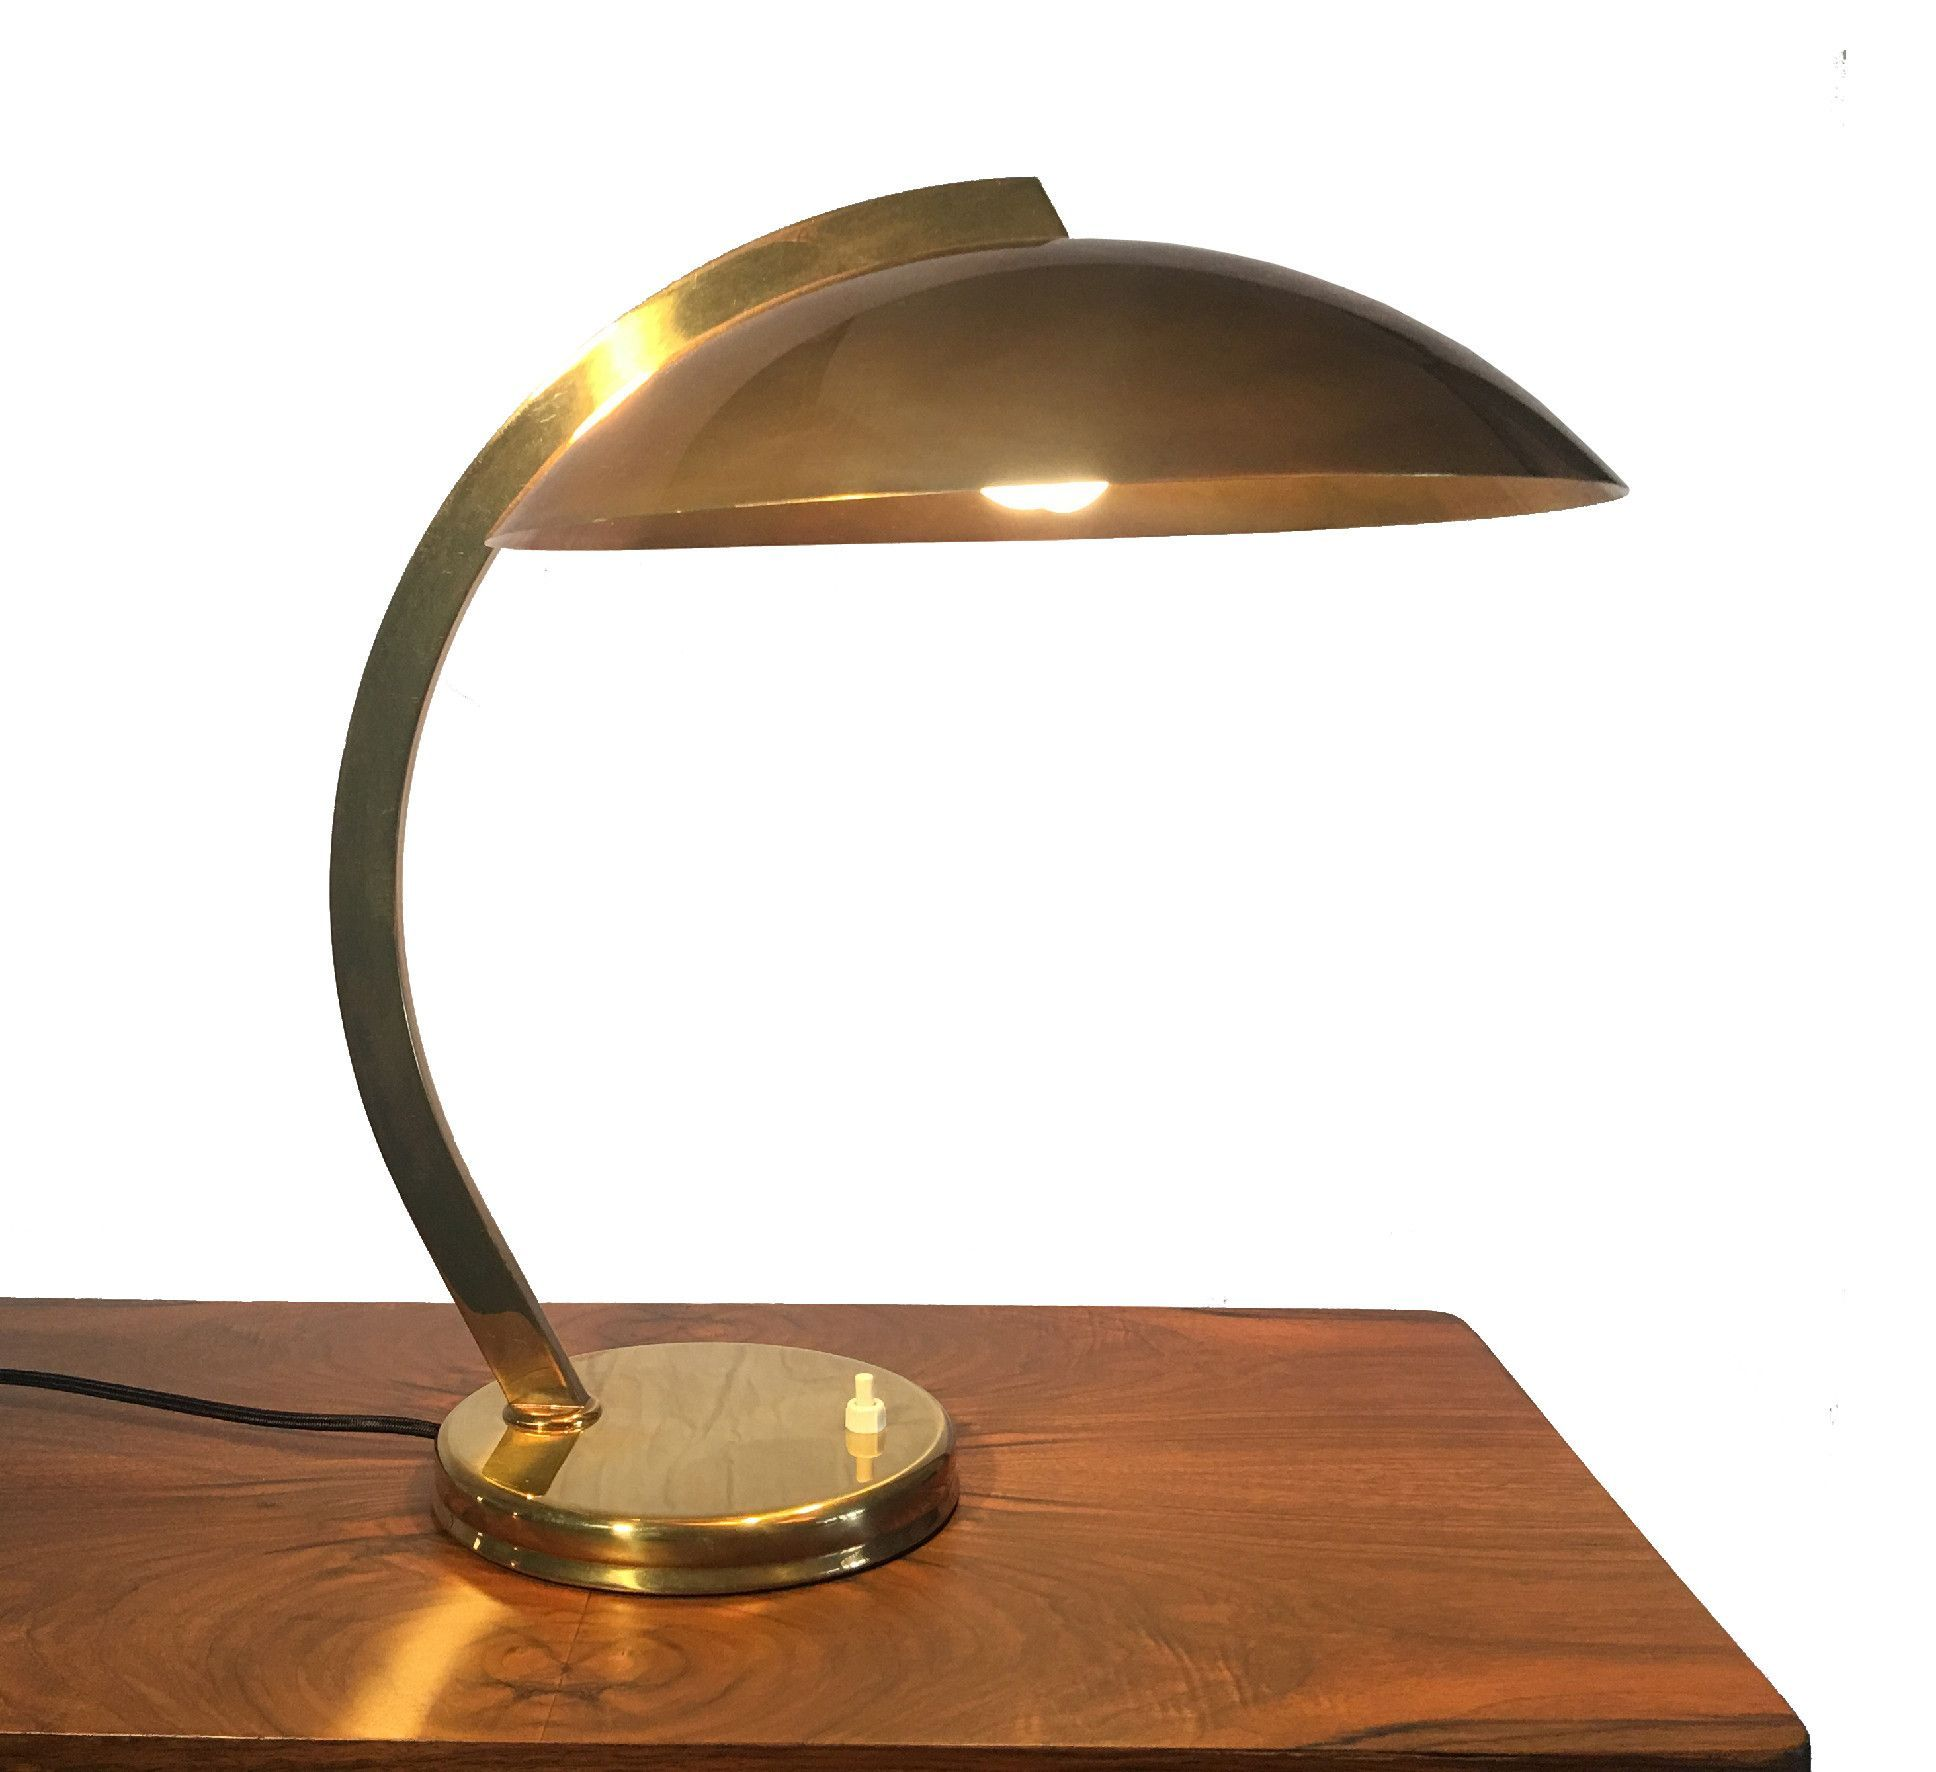 1930 S Bauhaus Desk Lamp With Domed Metal Shade Brass Plated For Sale Cityofzdesign Com Desk Lamp Lamp Art Deco Lamps